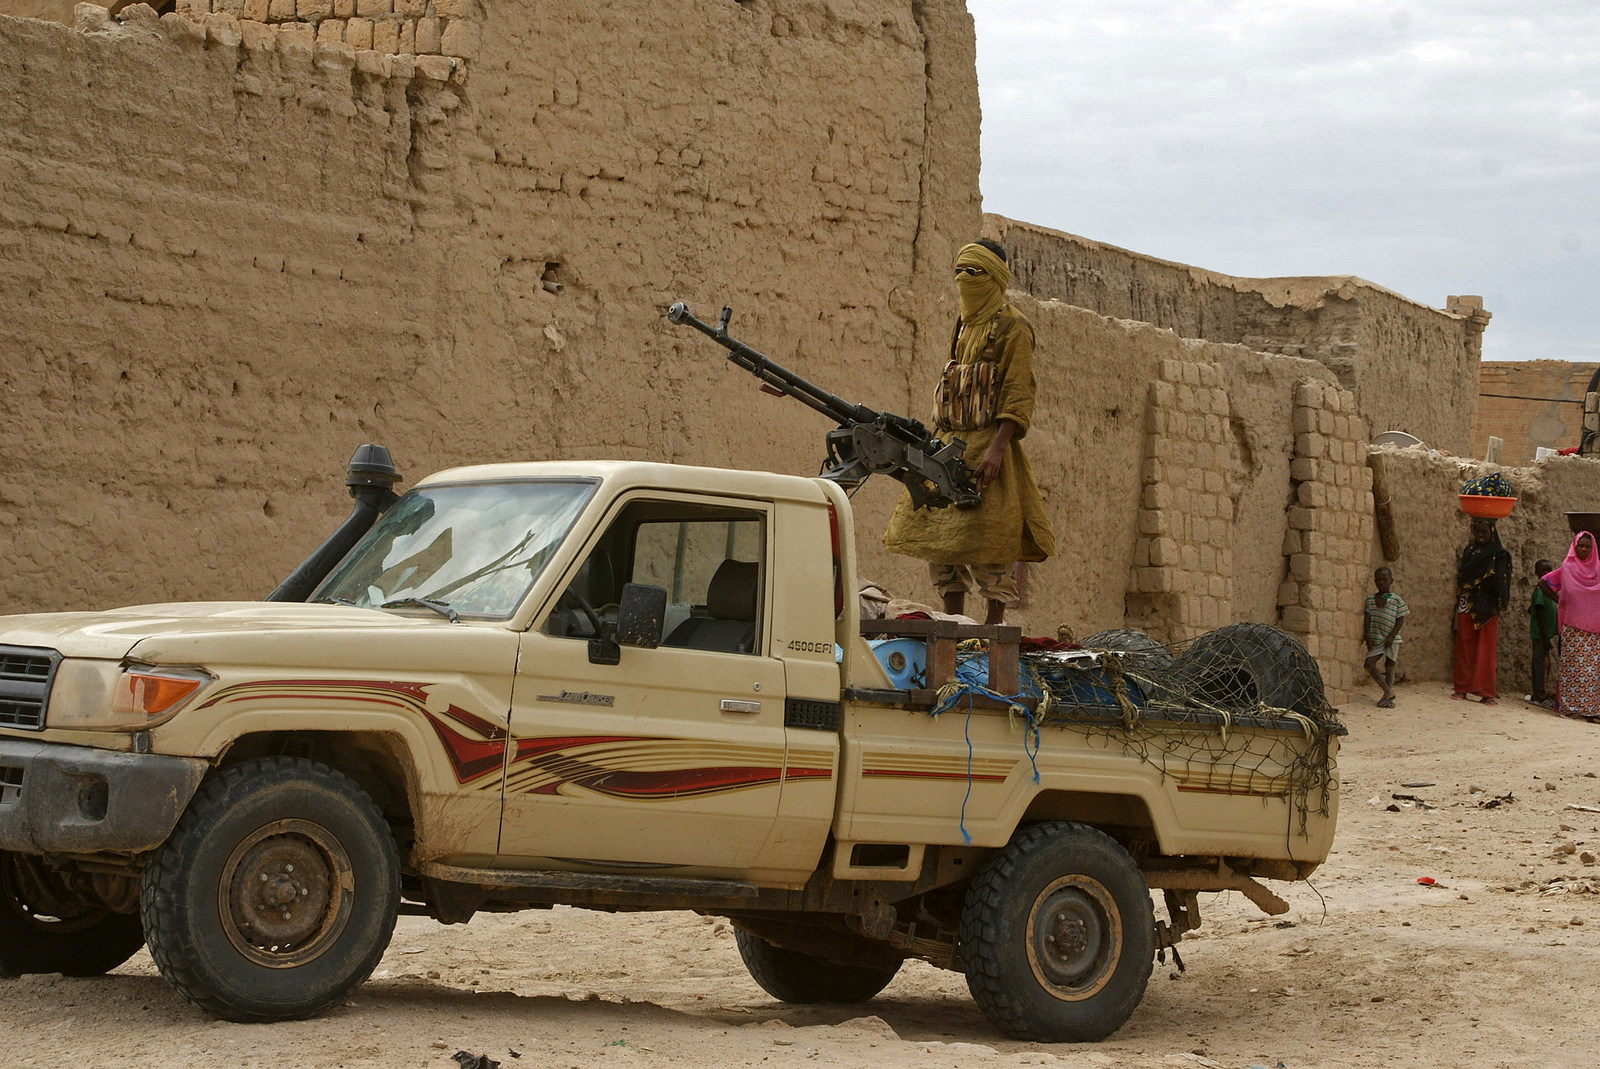 The French-led military offensive has dislodged Islamist militants from key towns in northern Mali